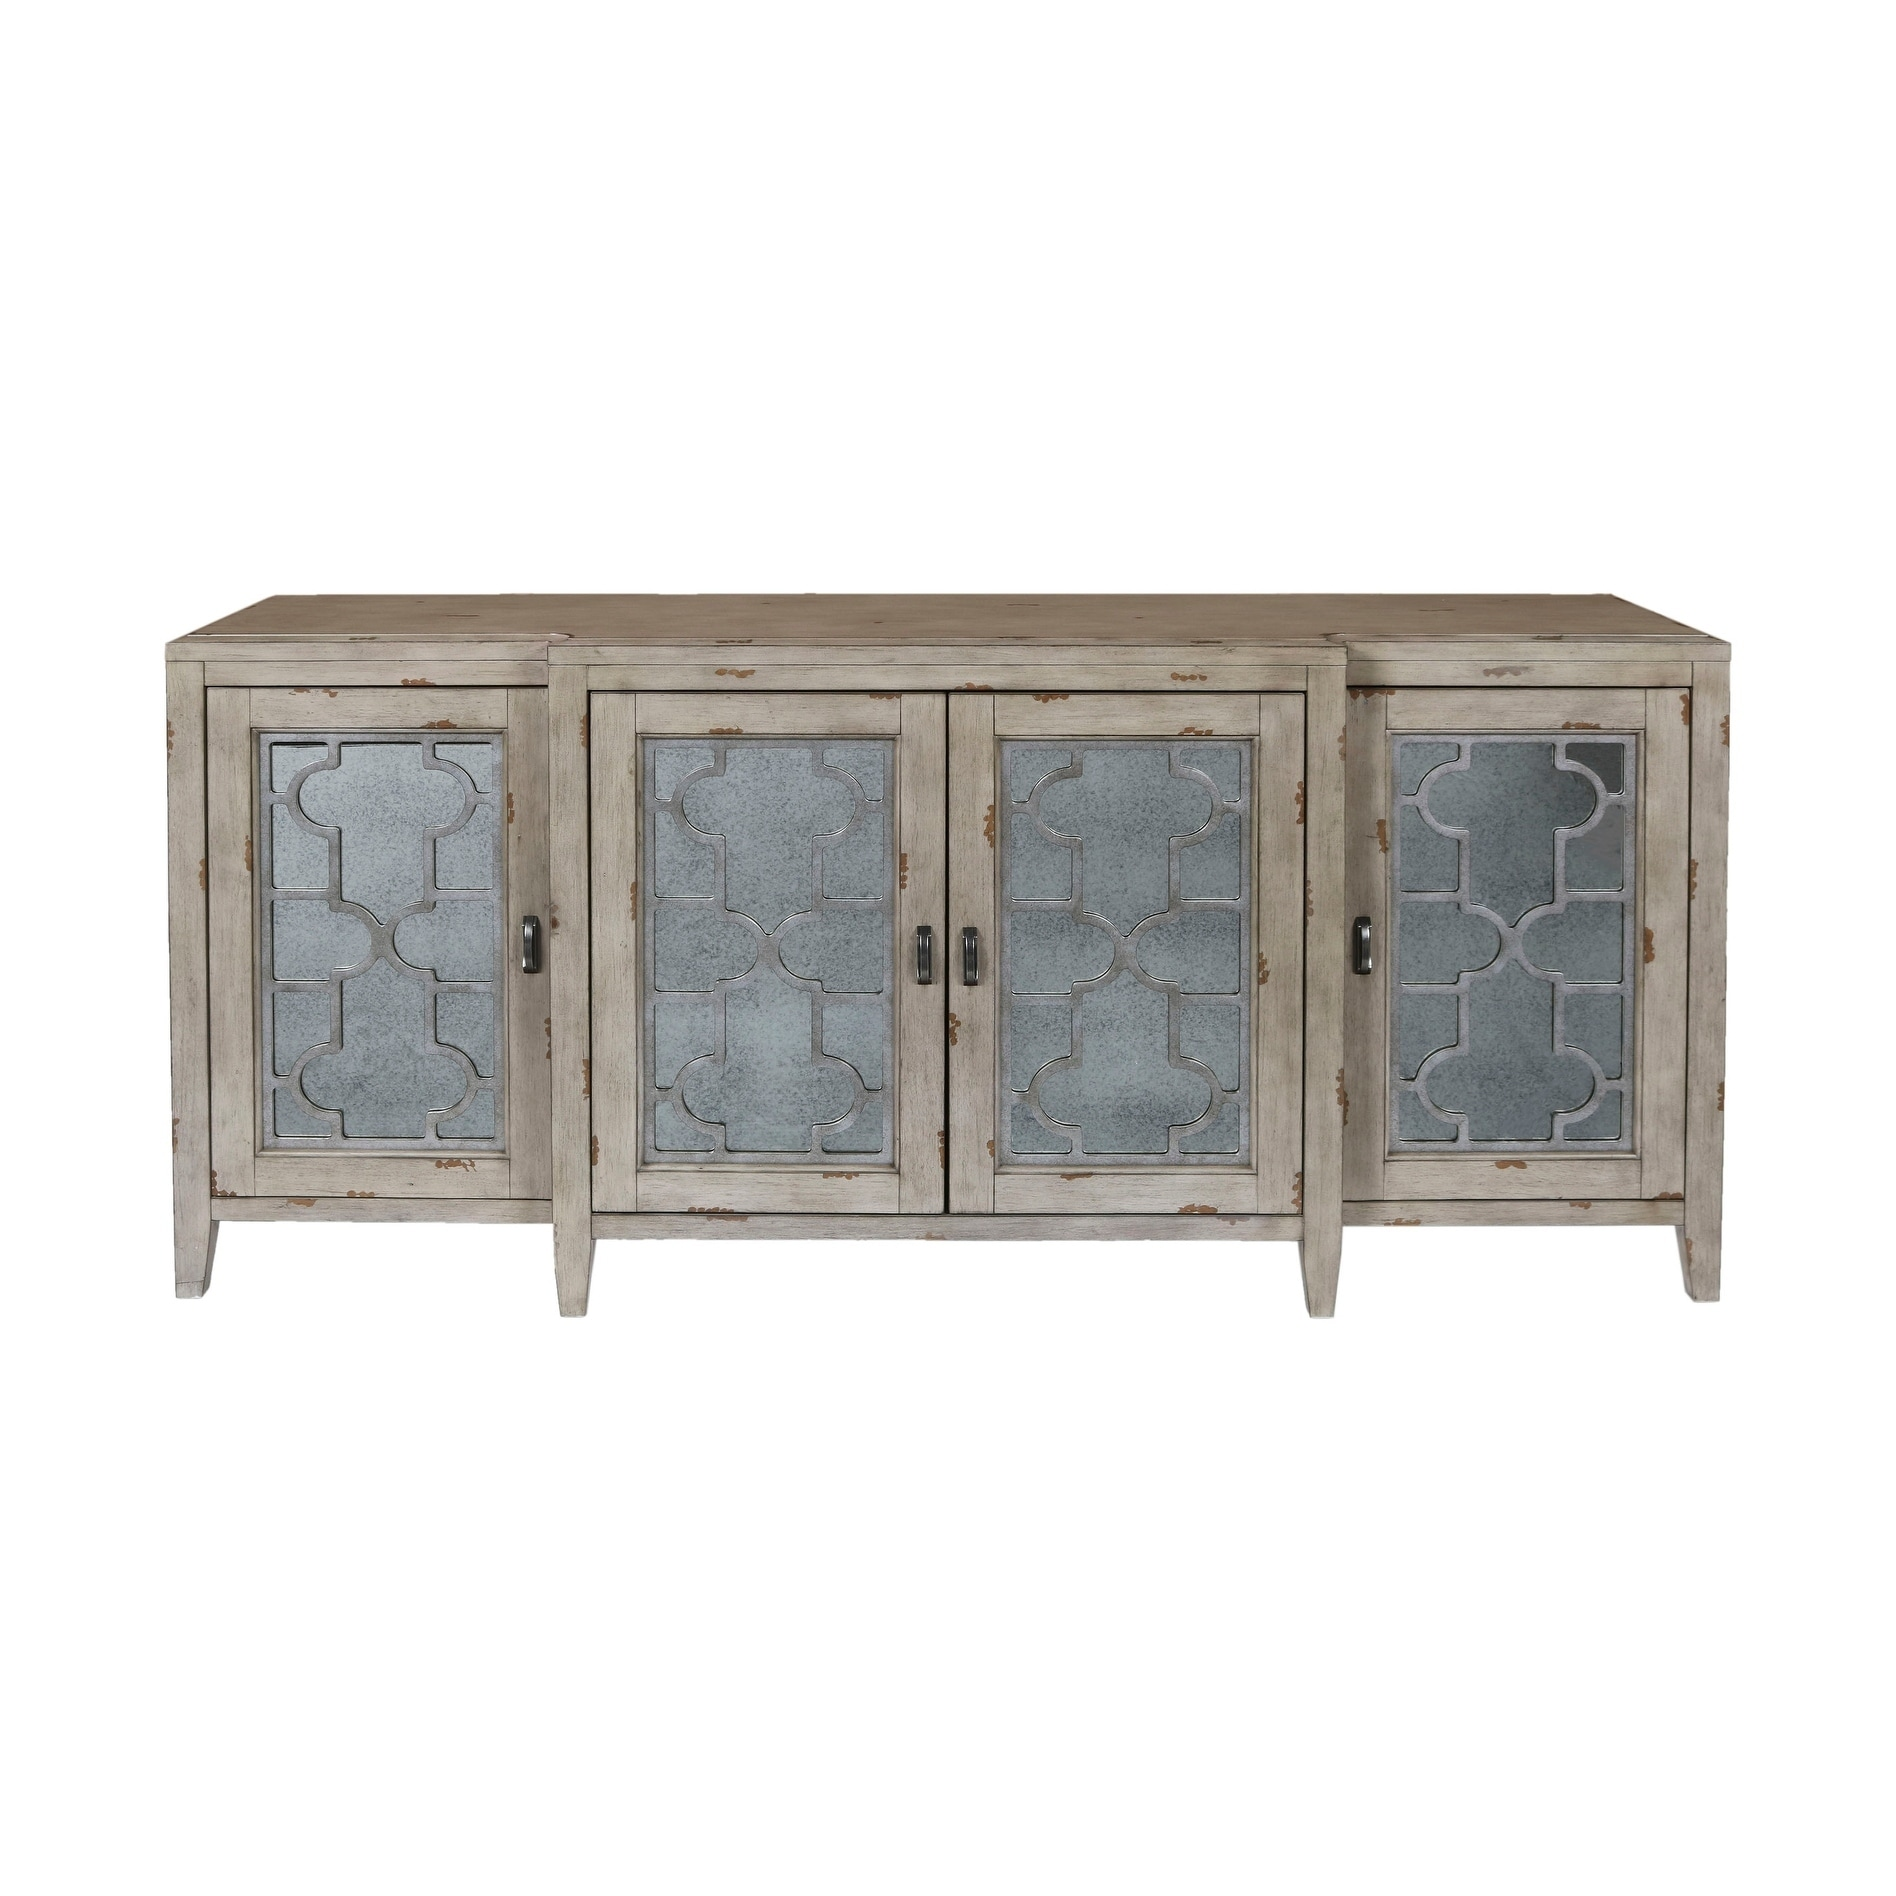 bartoli antique white door credenza free shipping today mirimyn round accent table sofa and loveseat set comfortable runner patterns cherry glass coffee wrought iron contemporary